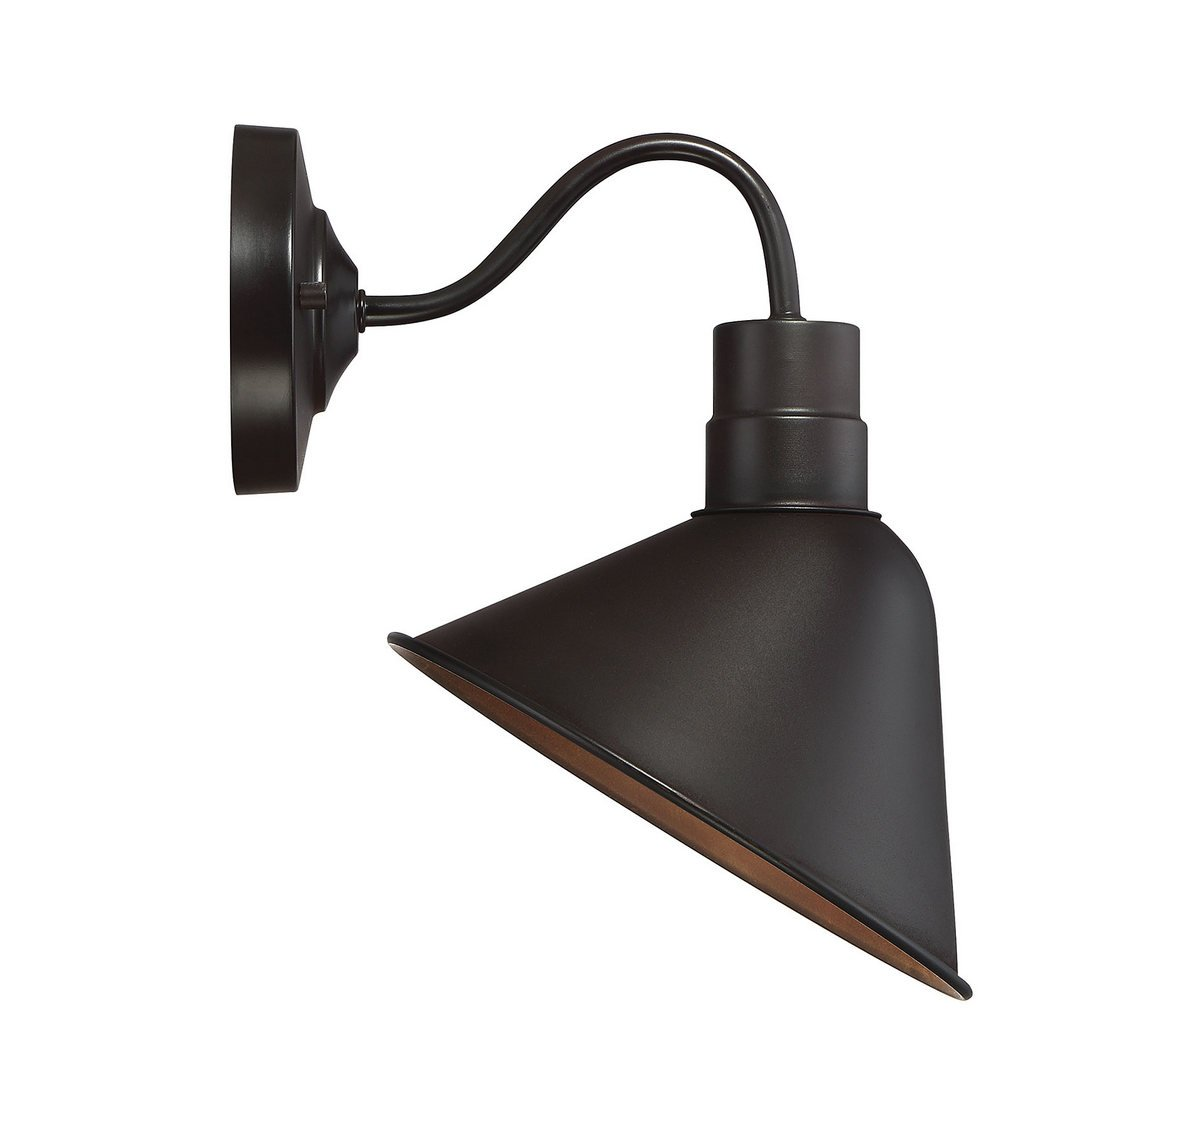 Trade Winds Lighting TW50006ORB Industrial Retro Vintage Gooseneck Barn 1-Light Transitional Wall Sconce, 100 Watts, in Oil Rubbed Bronze